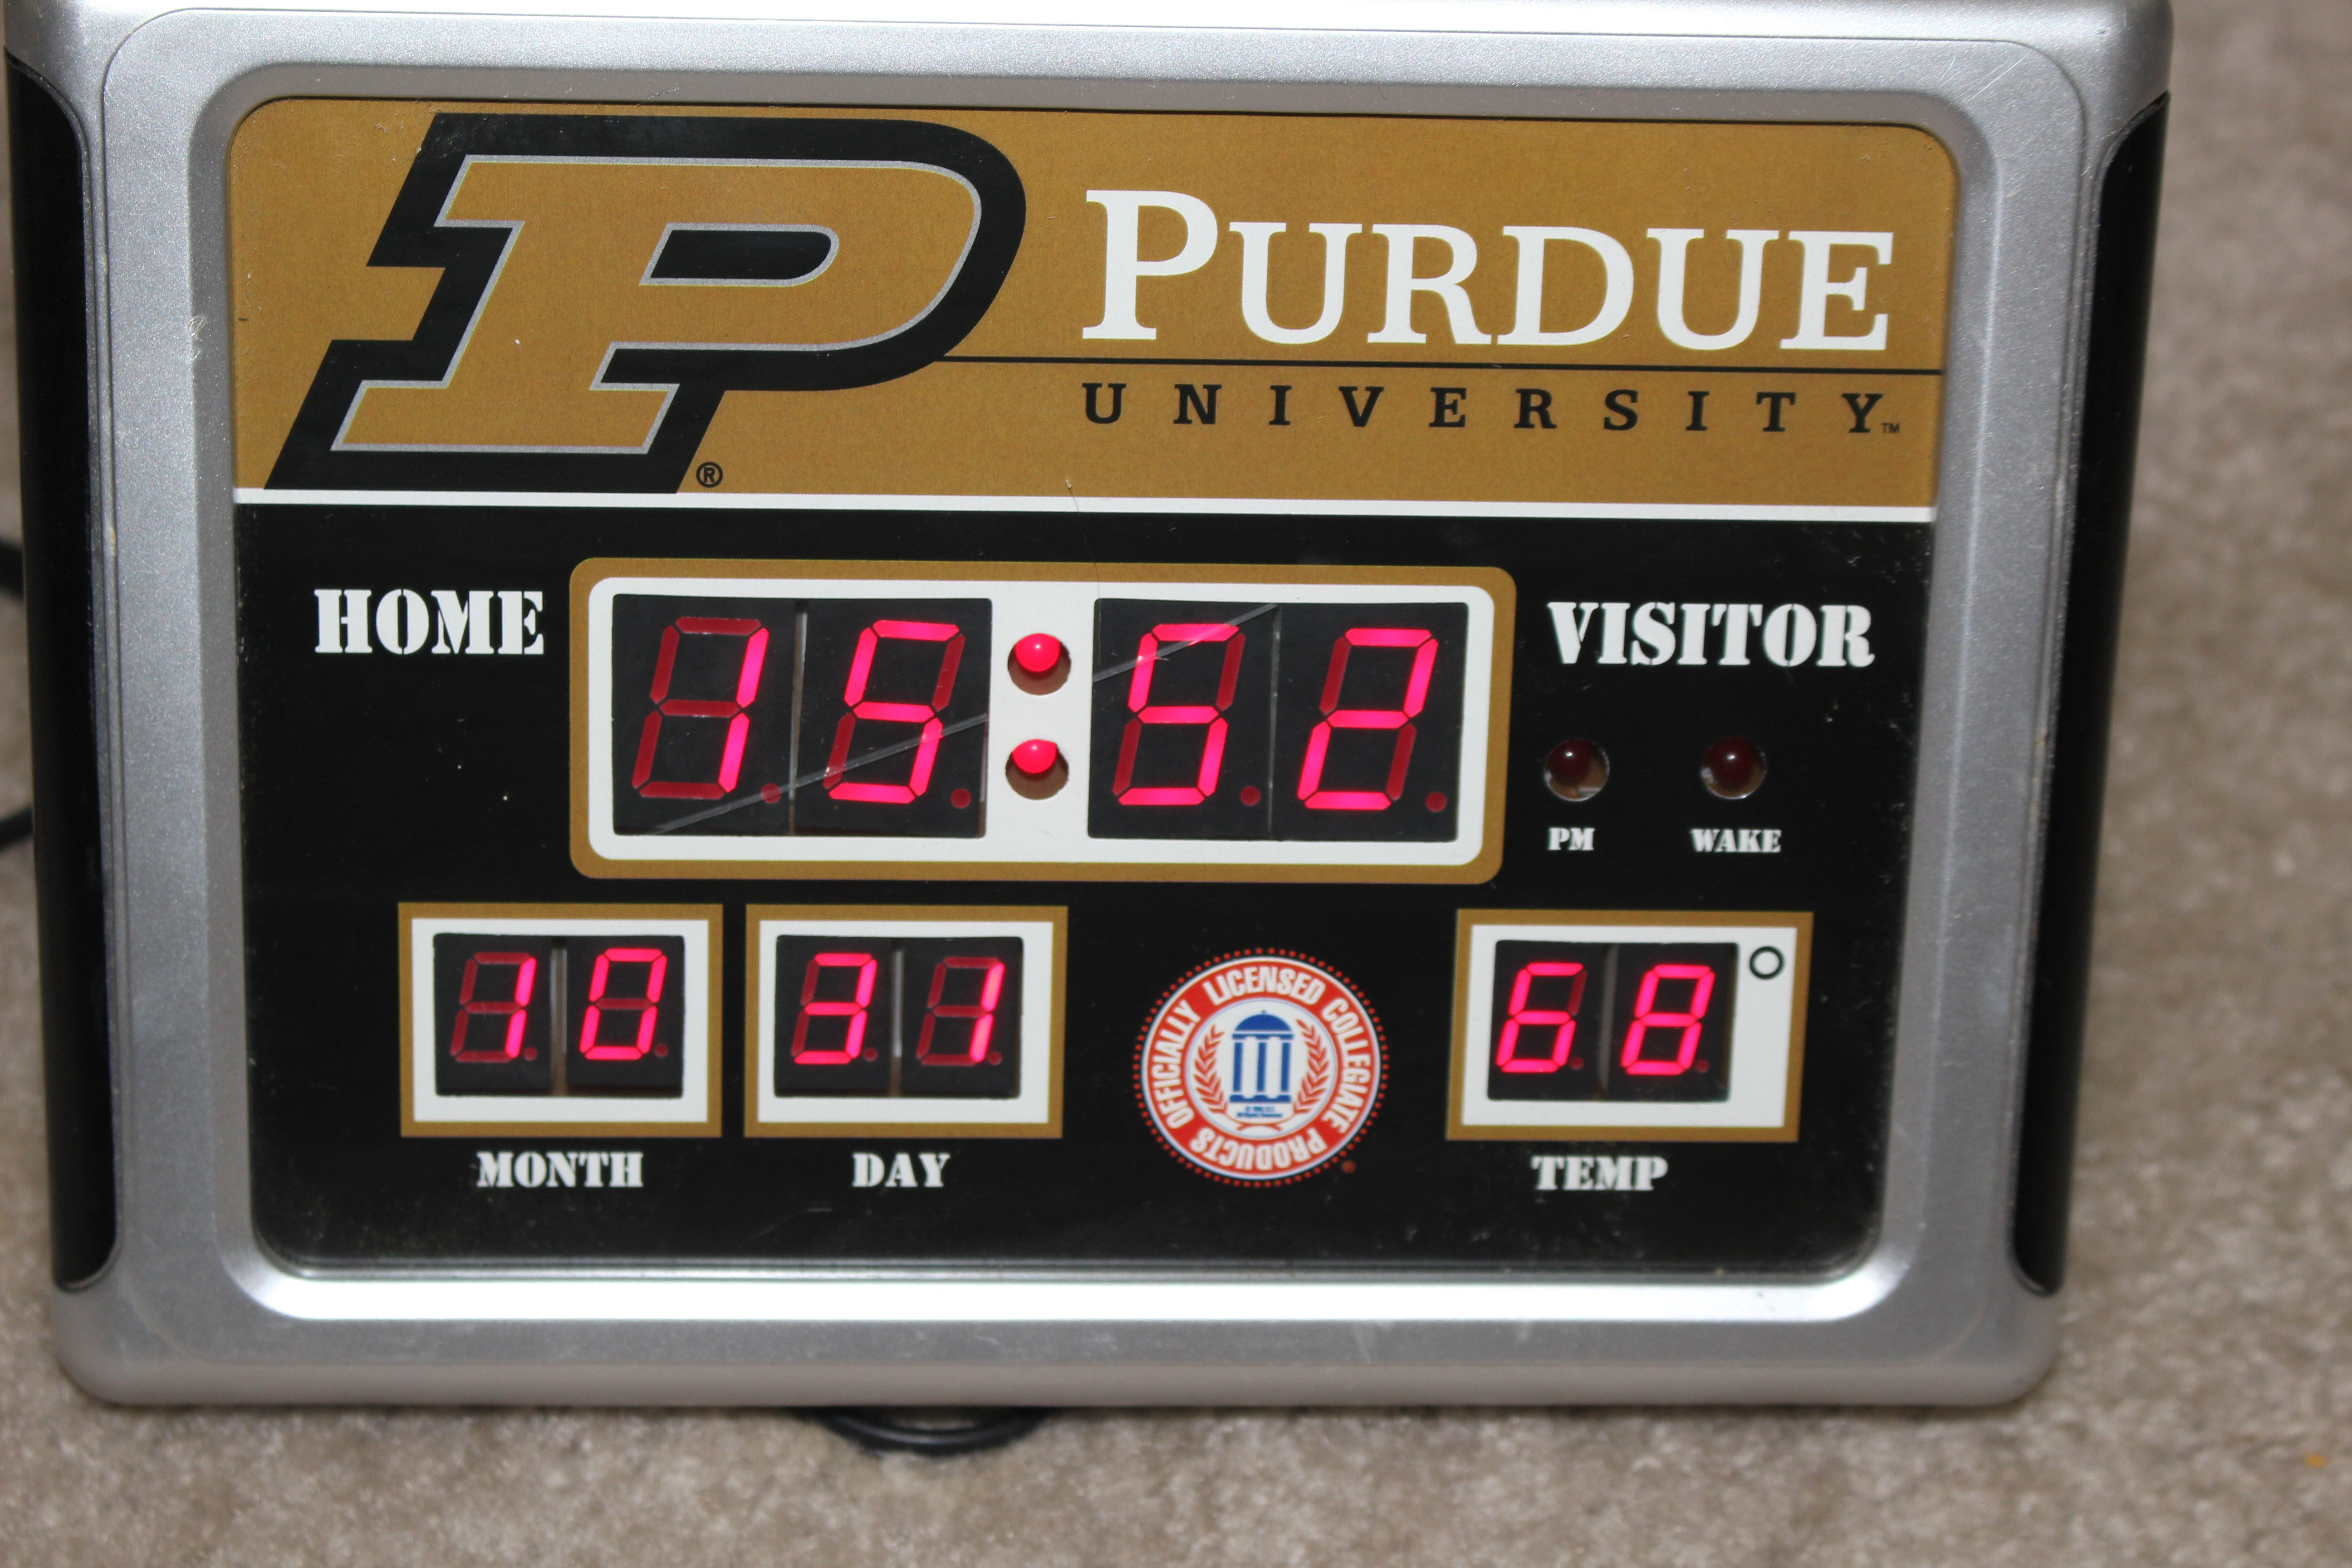 Purdue University Desktop Scoreboard Clock